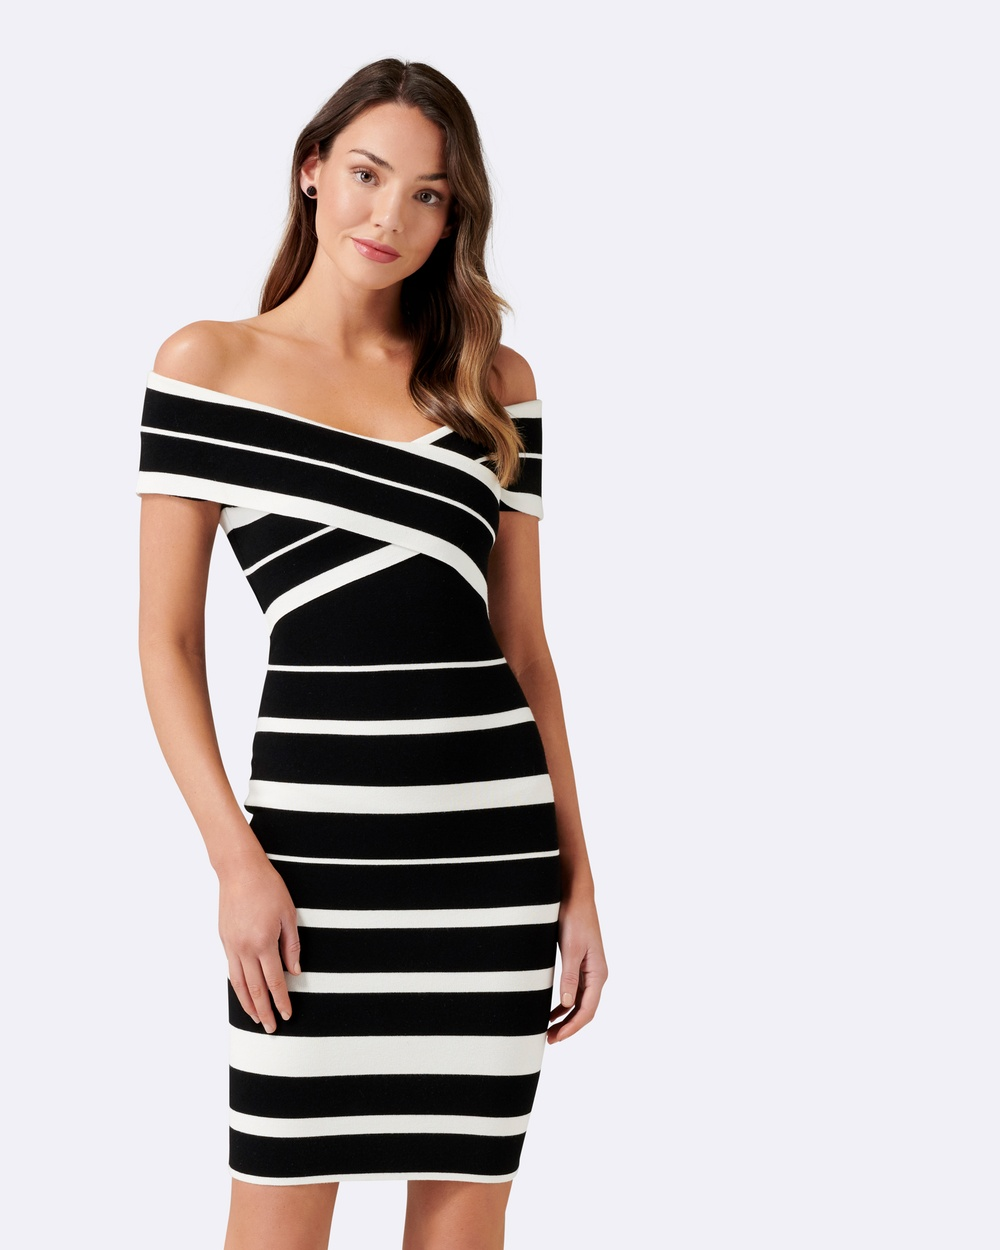 Forever New Kathleen Stripe Bardot Dress Bodycon Dresses Black and Porcelain Kathleen Stripe Bardot Dress